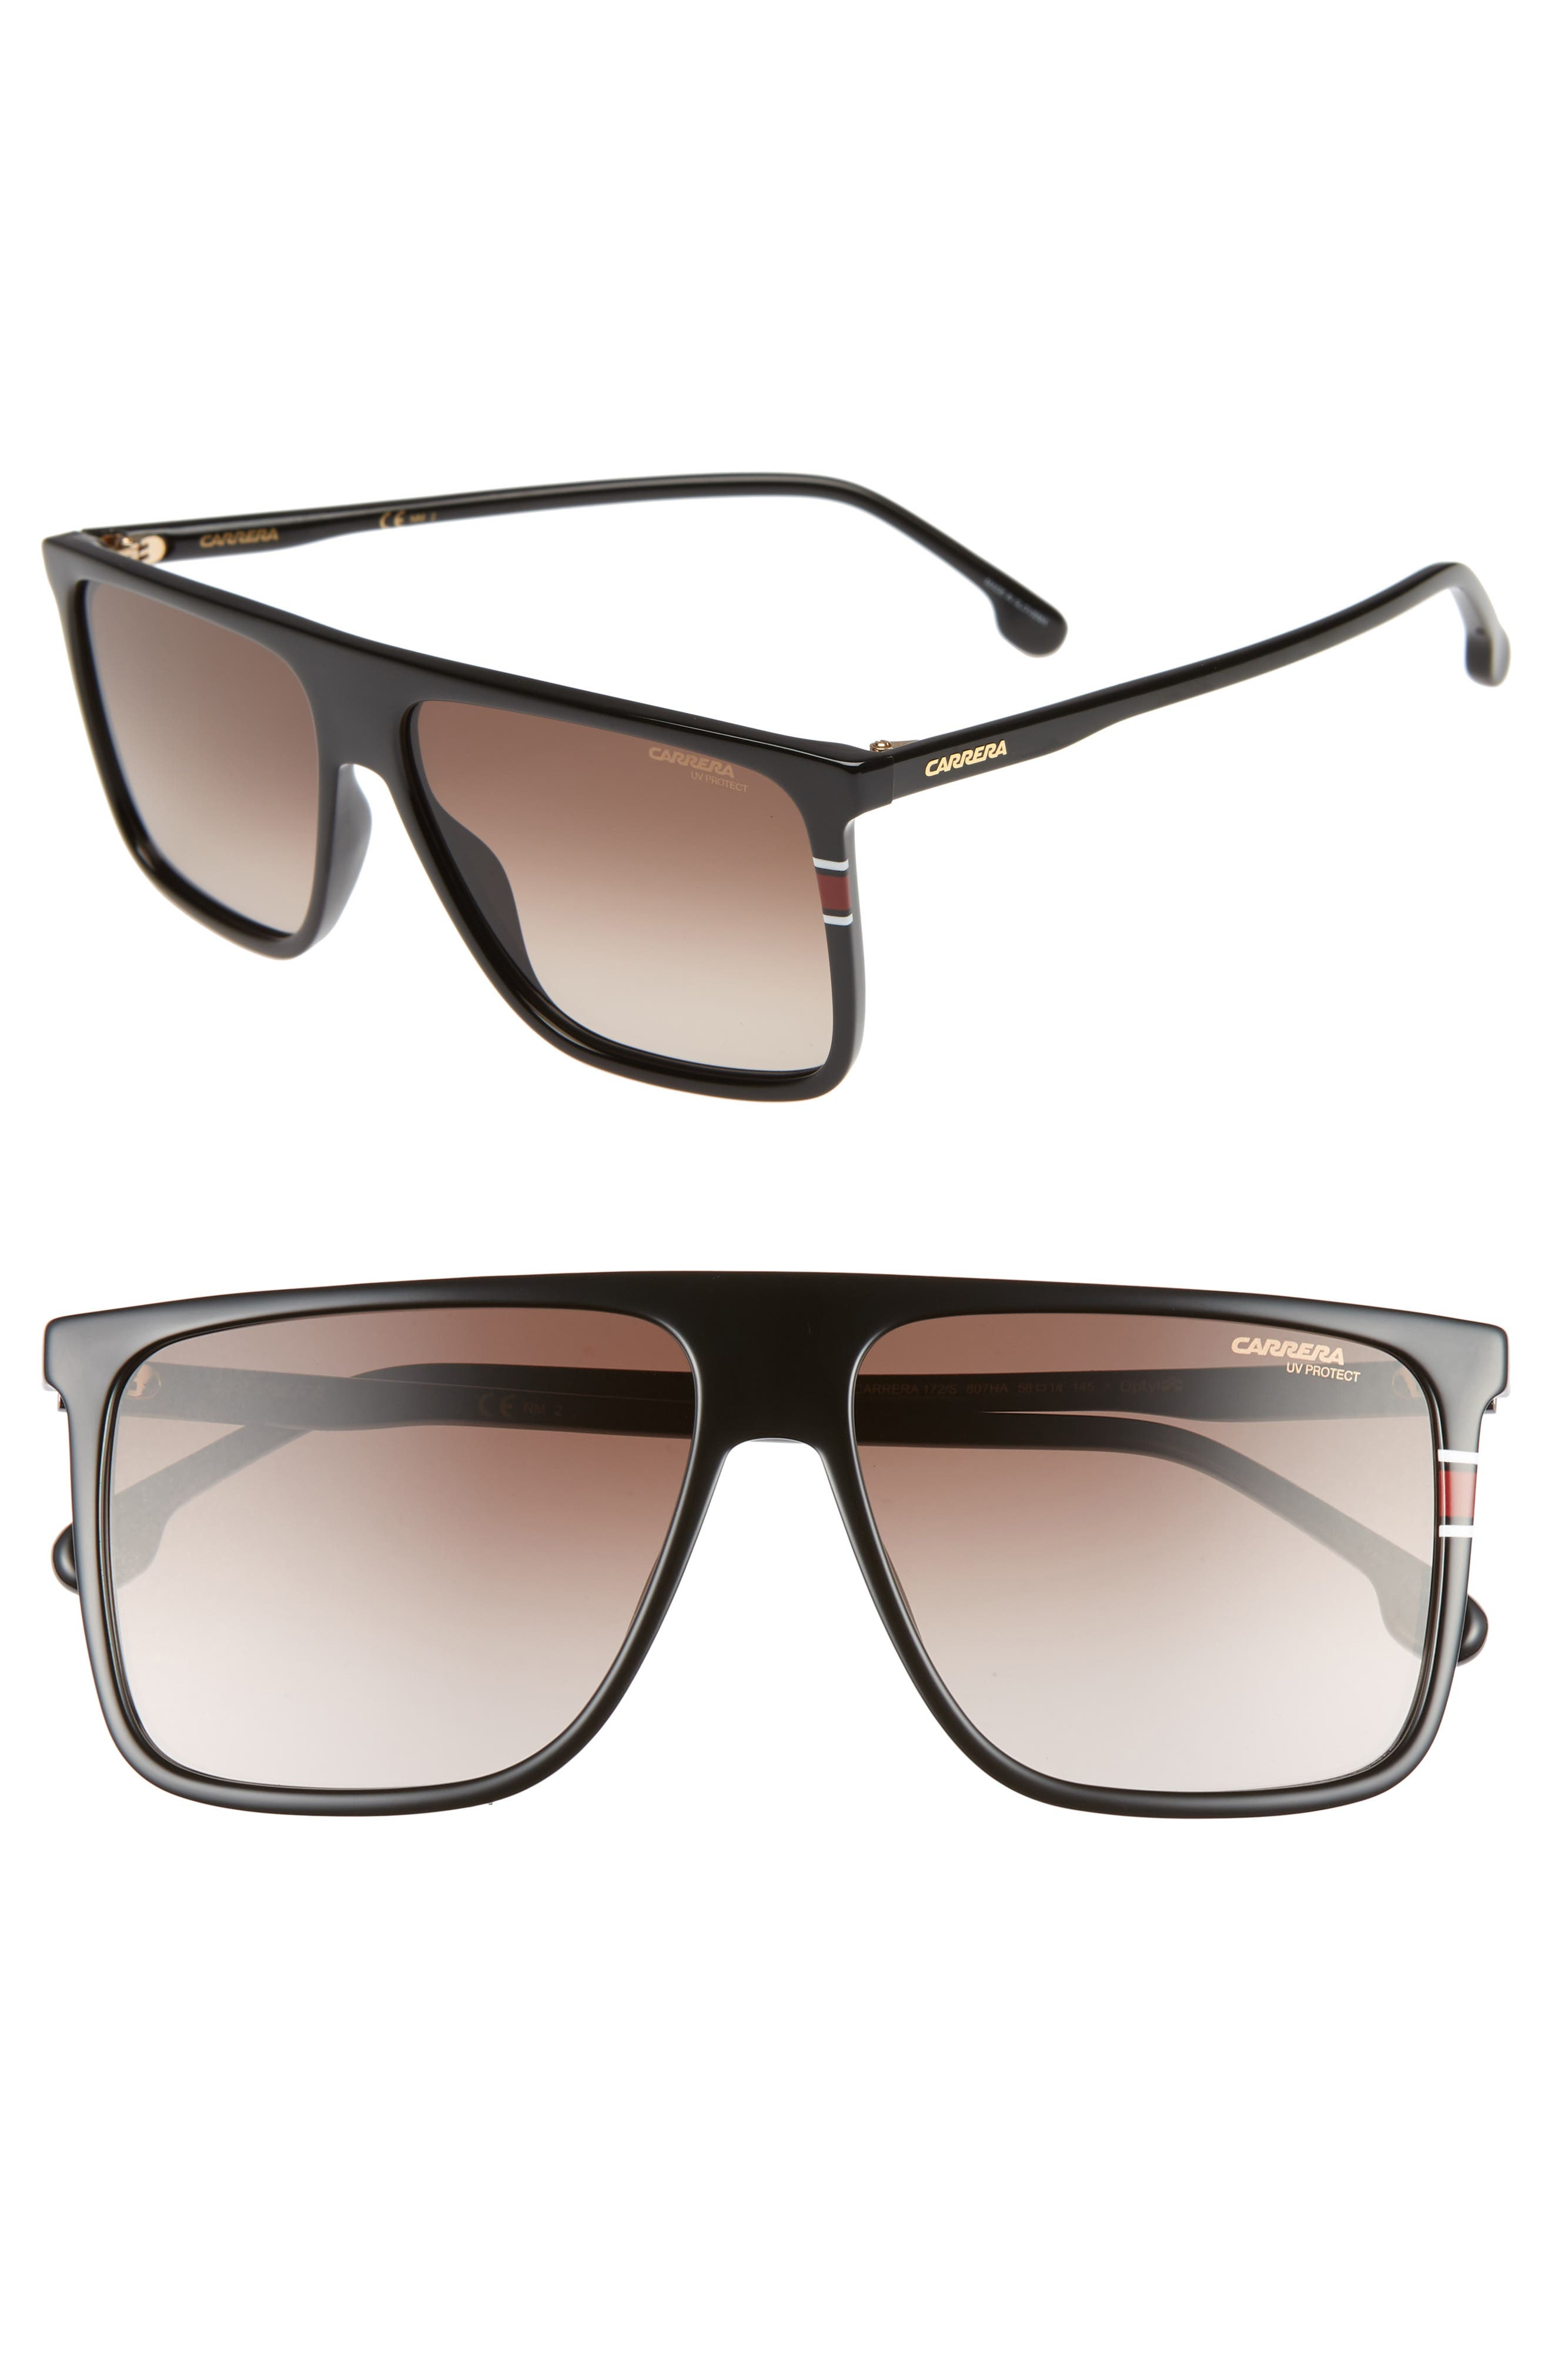 Carrera Eyewear 145Mm Flat Top Sunglasses -